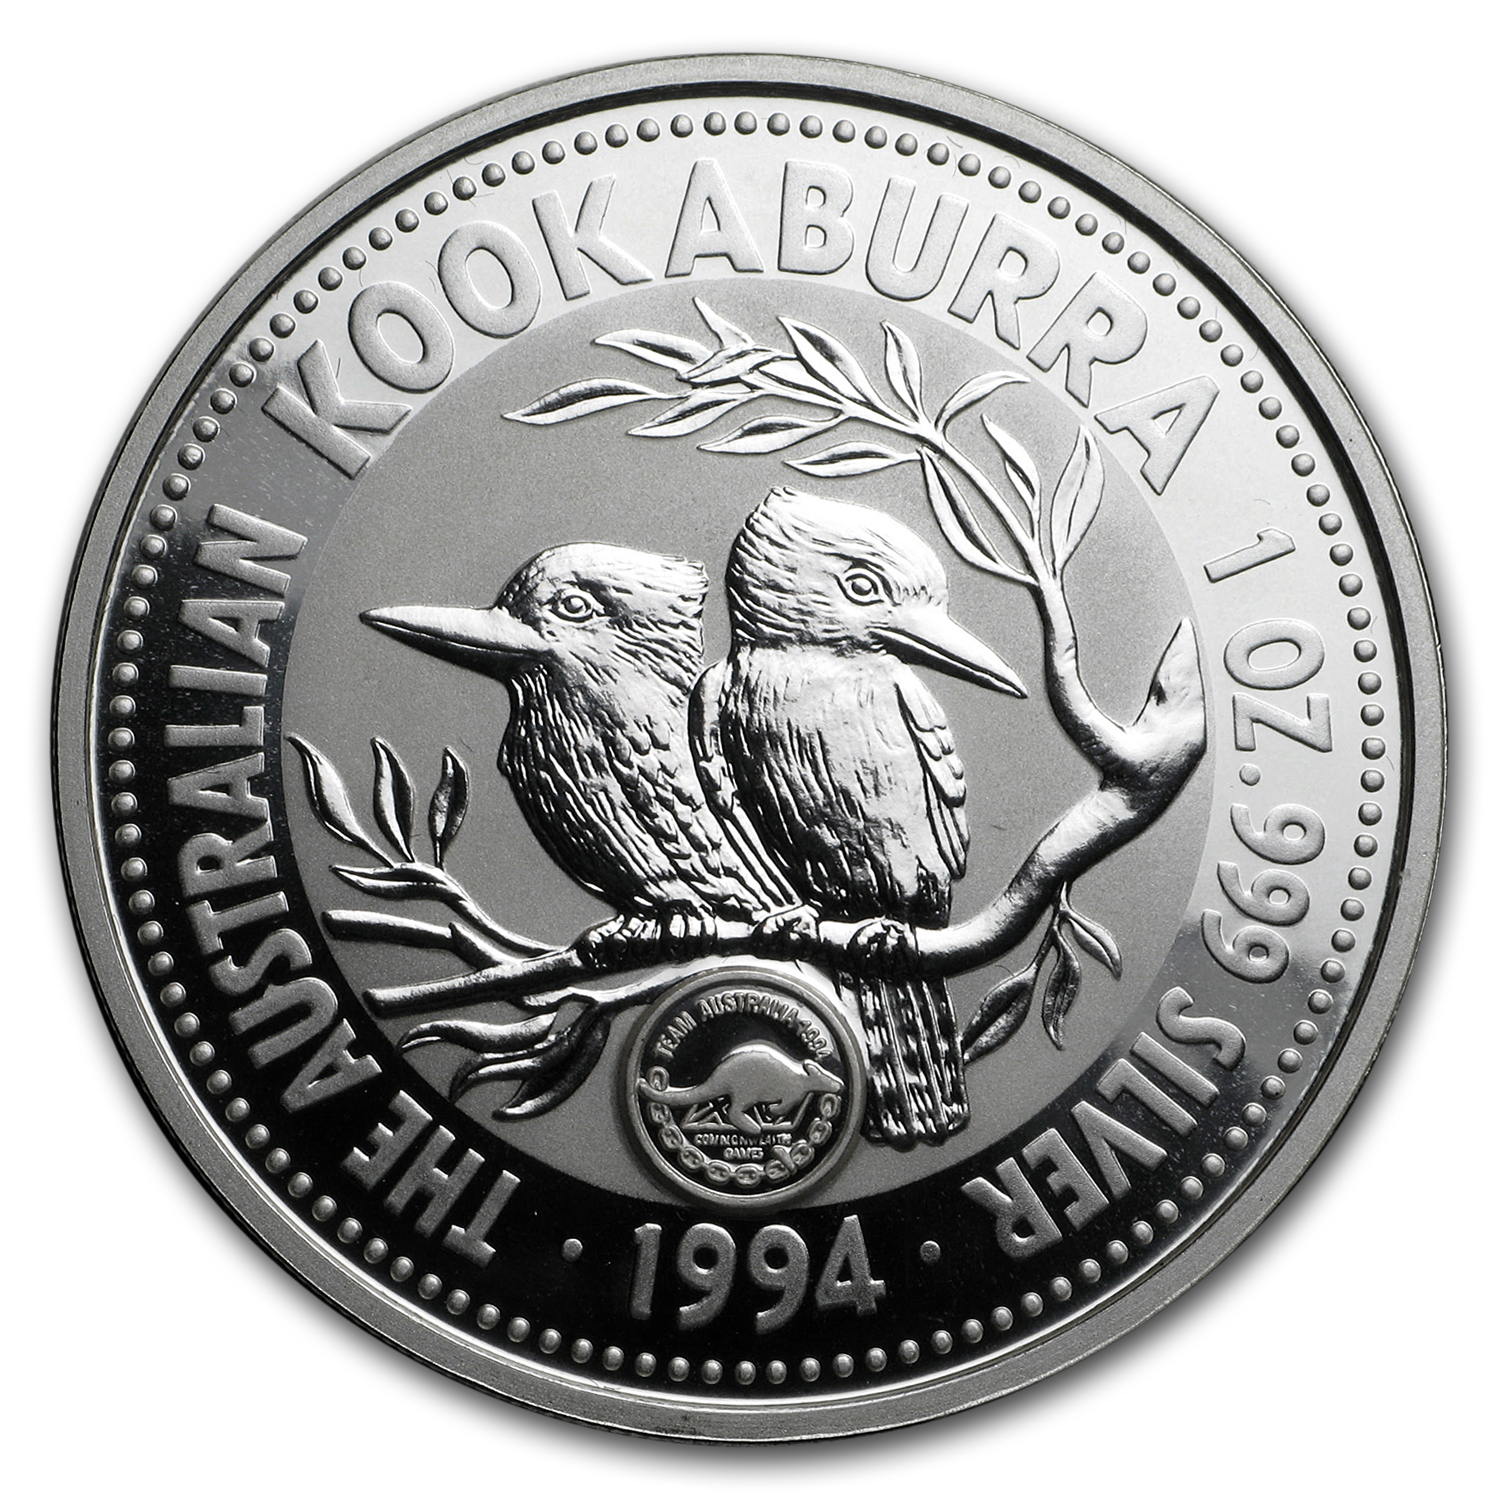 1994 1 oz Silver Kookaburra BU (Commonwealth Games Privy)